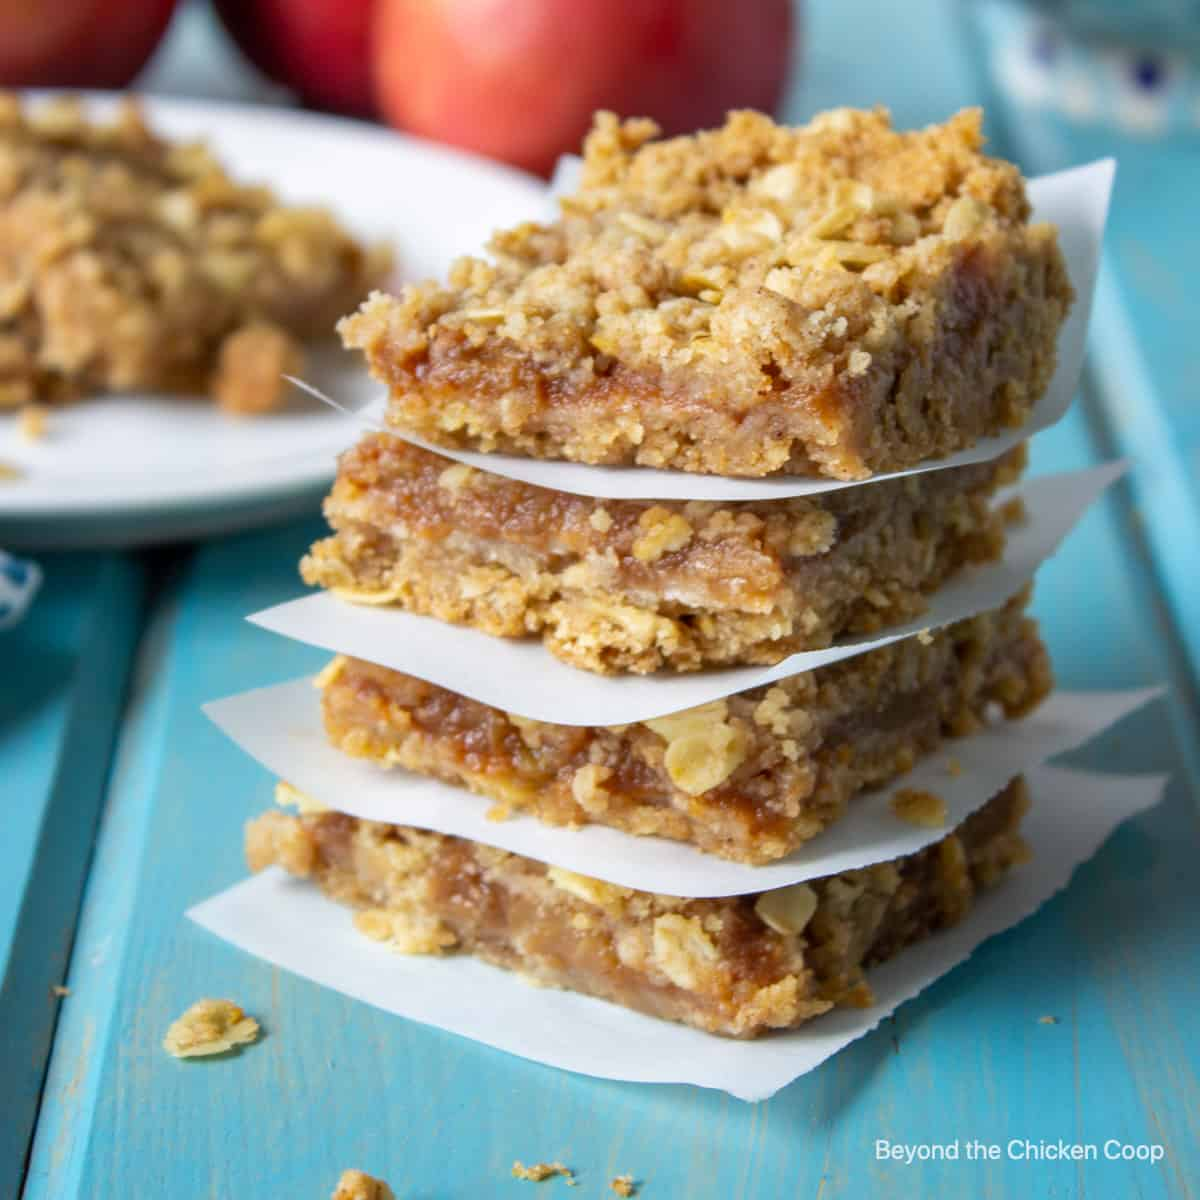 A stack of four oatmeal bars with an applesauce filling.